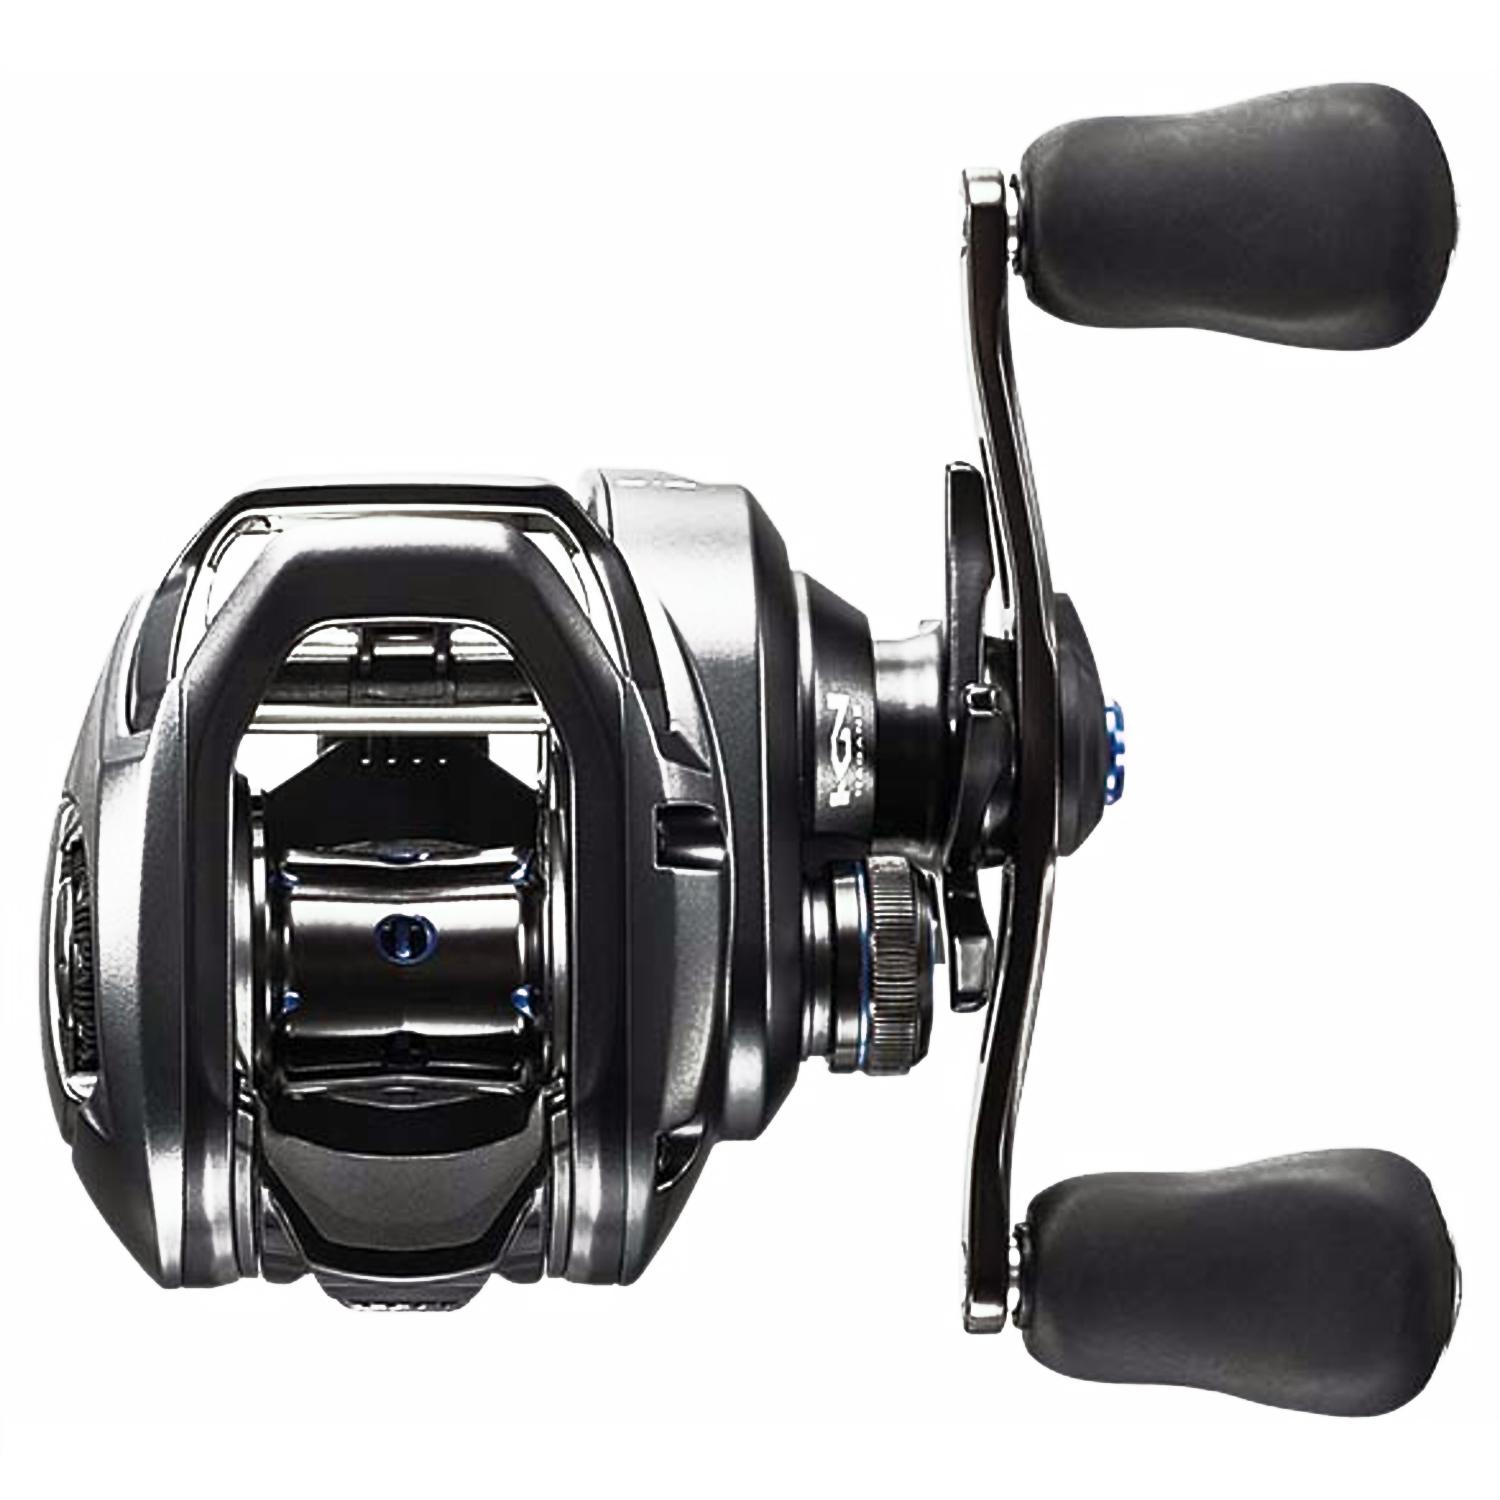 Shimano SLX MGL Low-Profile Casting Reel Top View